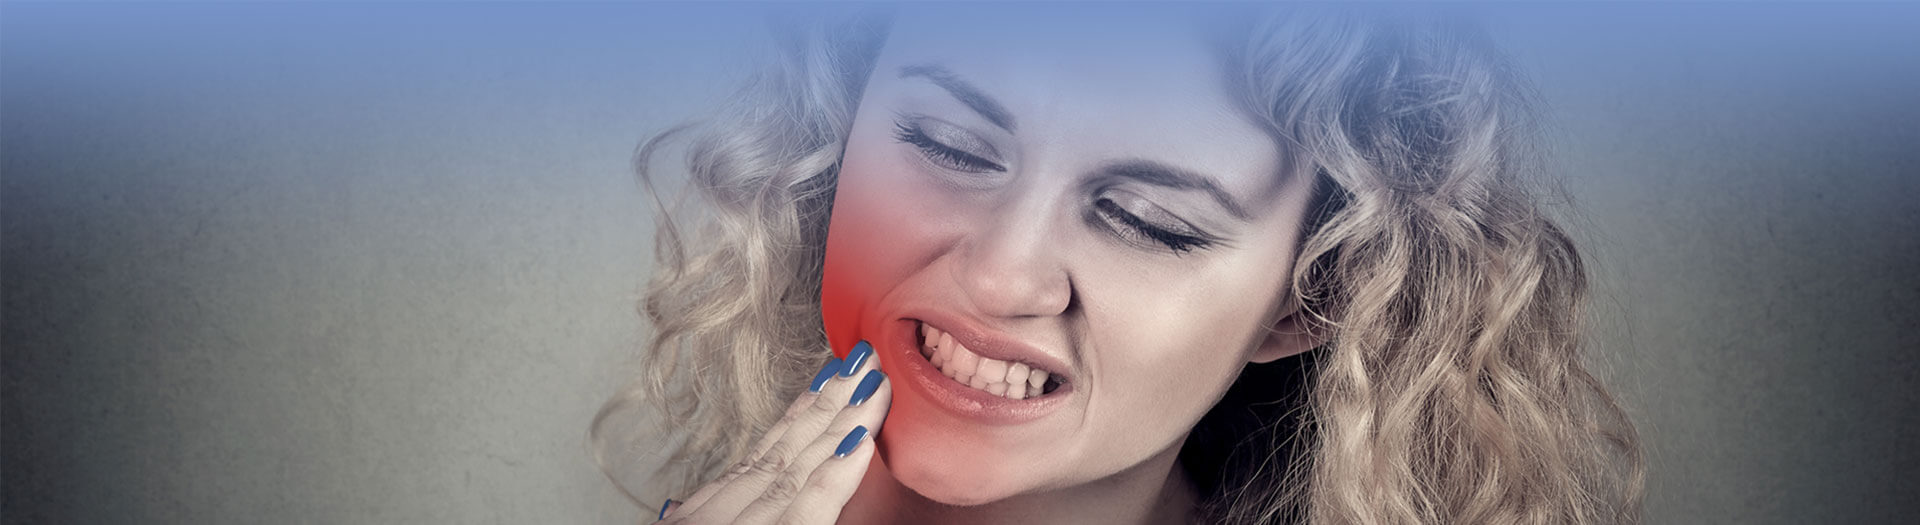 Woman with gum disease & toothache problem